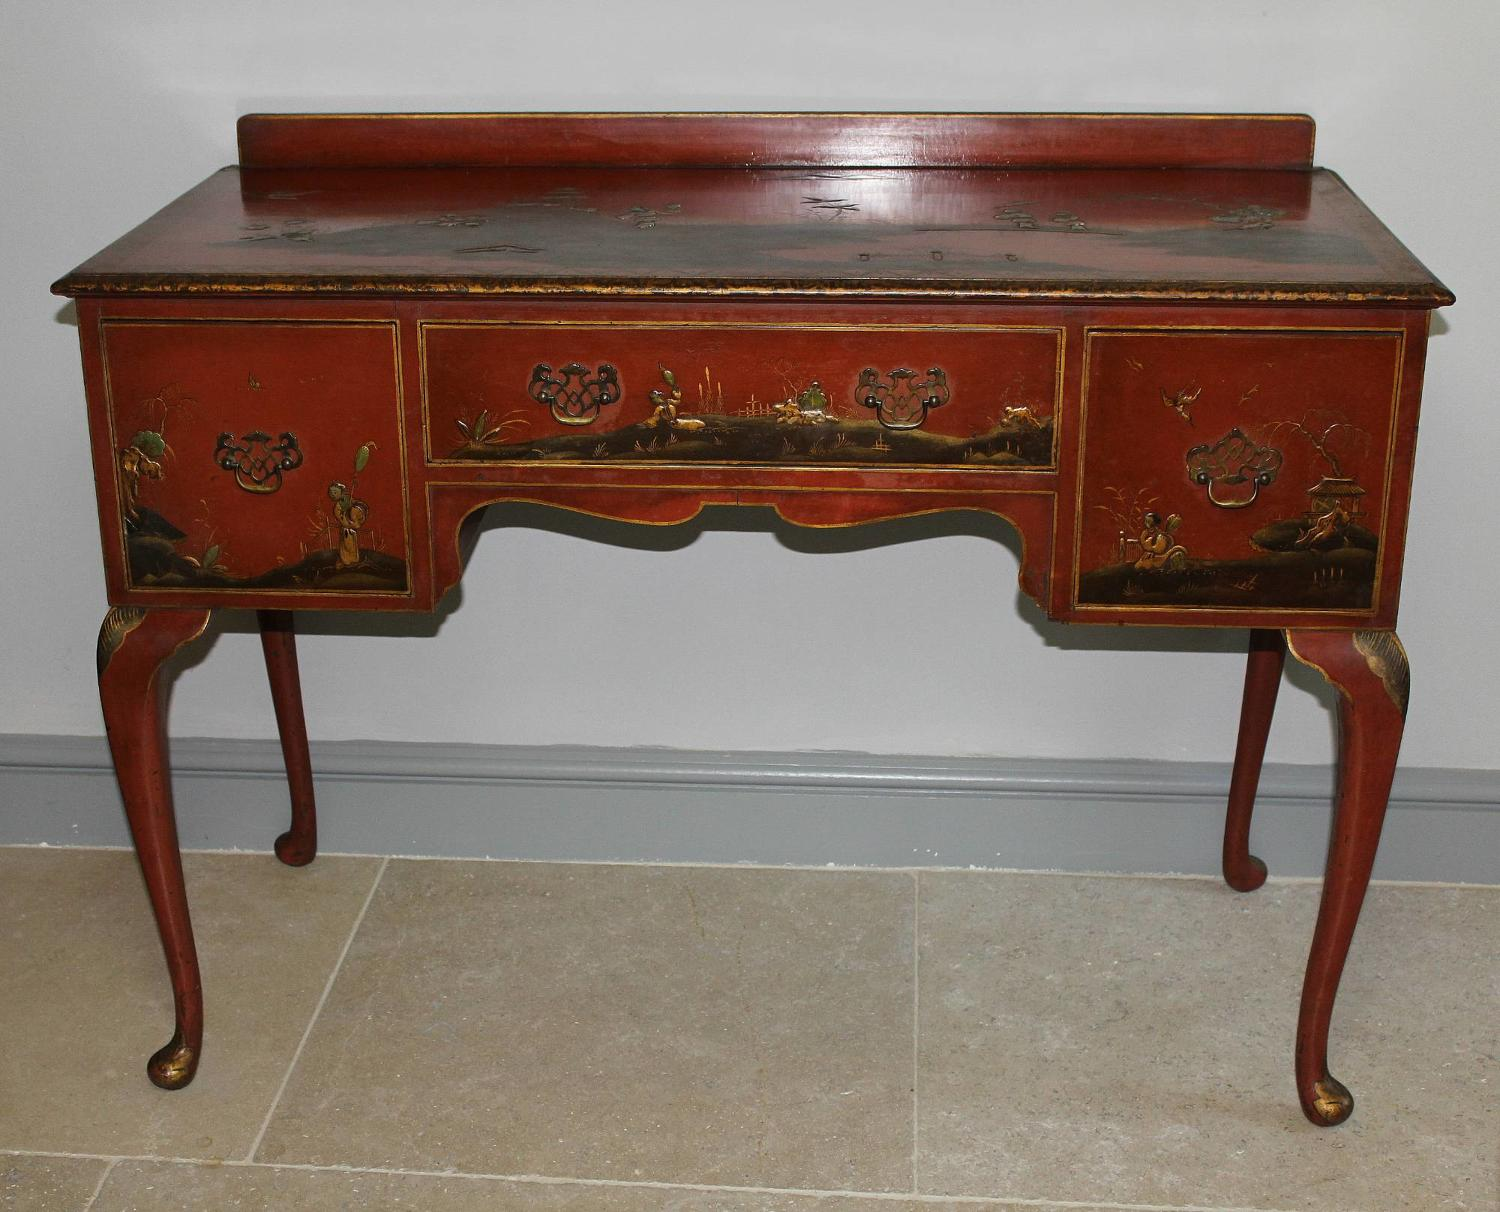 Chinoiserie Decorated Red Lacquer Console Table